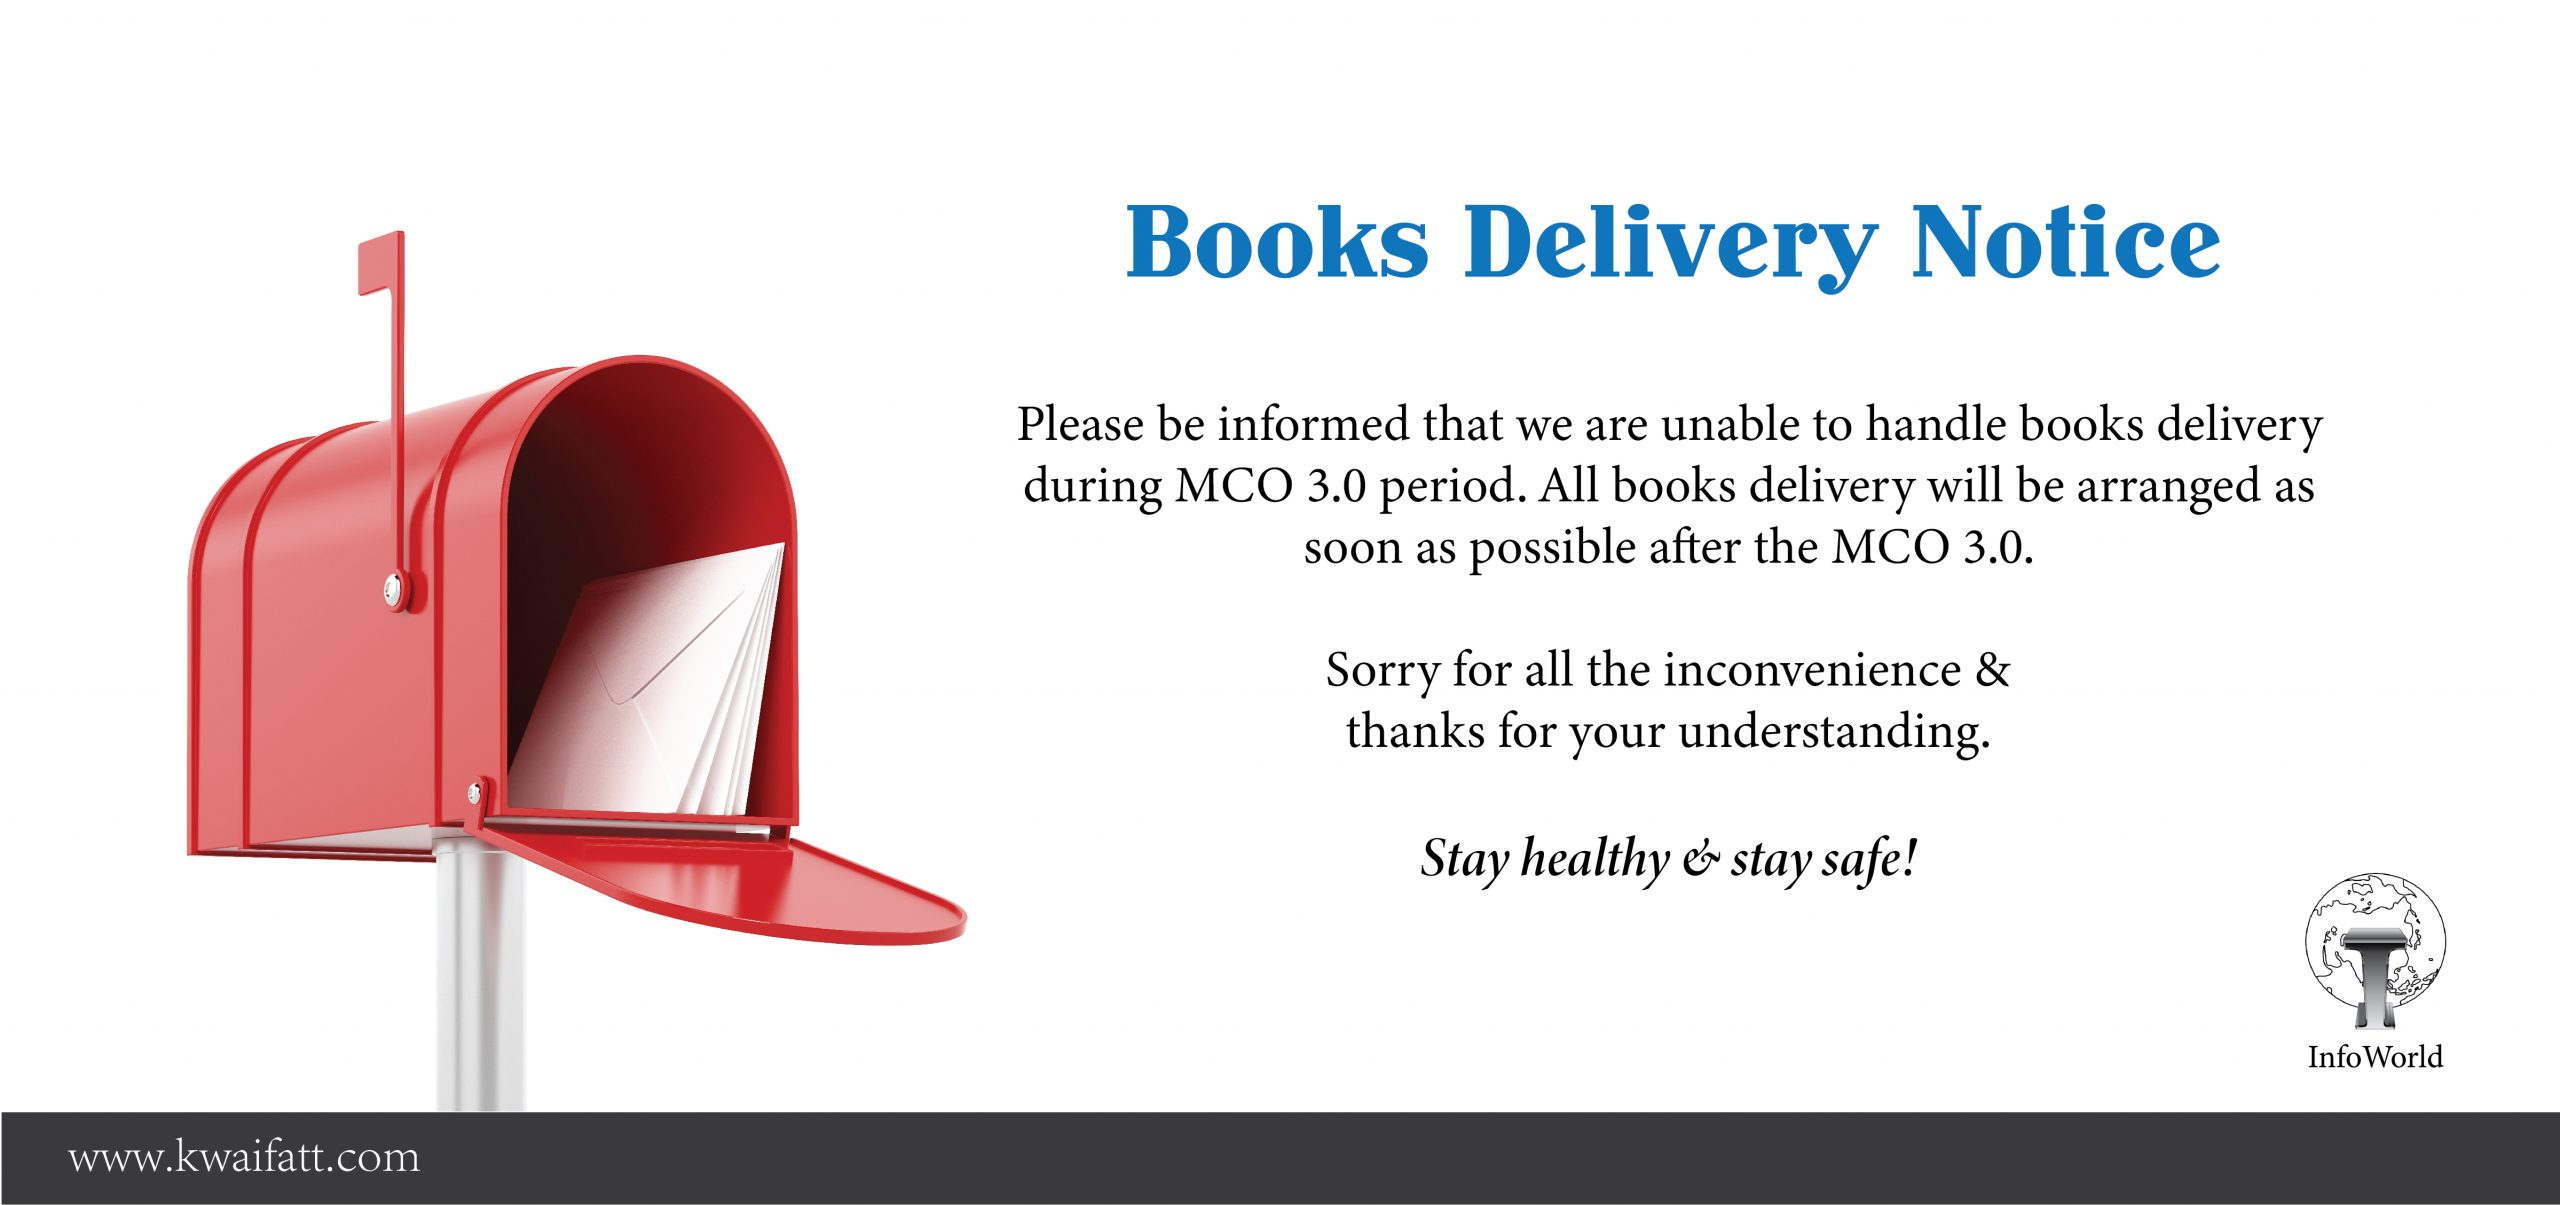 Books delivery notice